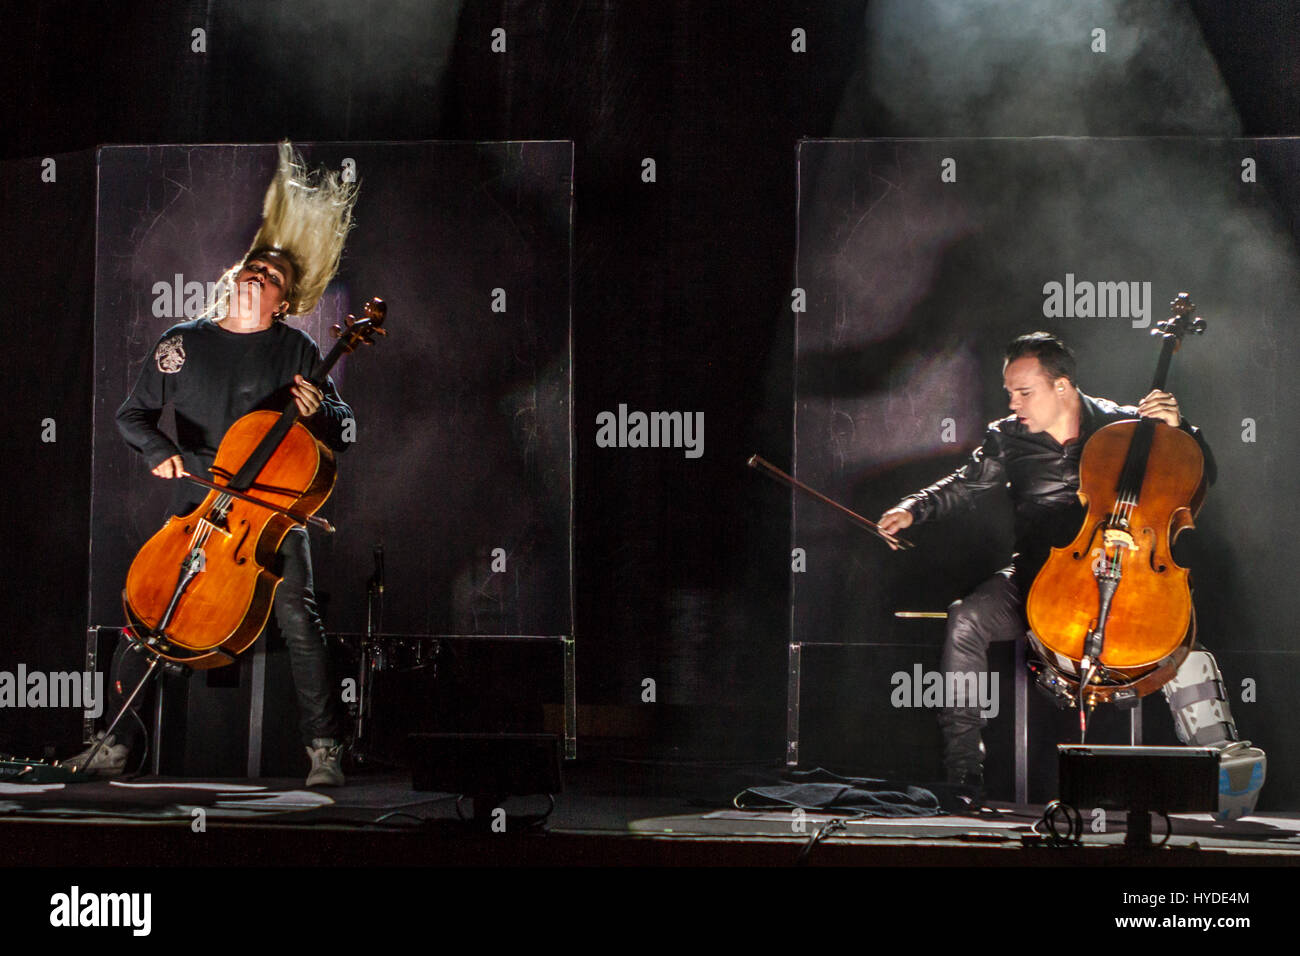 Finnish band Apocalyptica playing Metallica songs live in